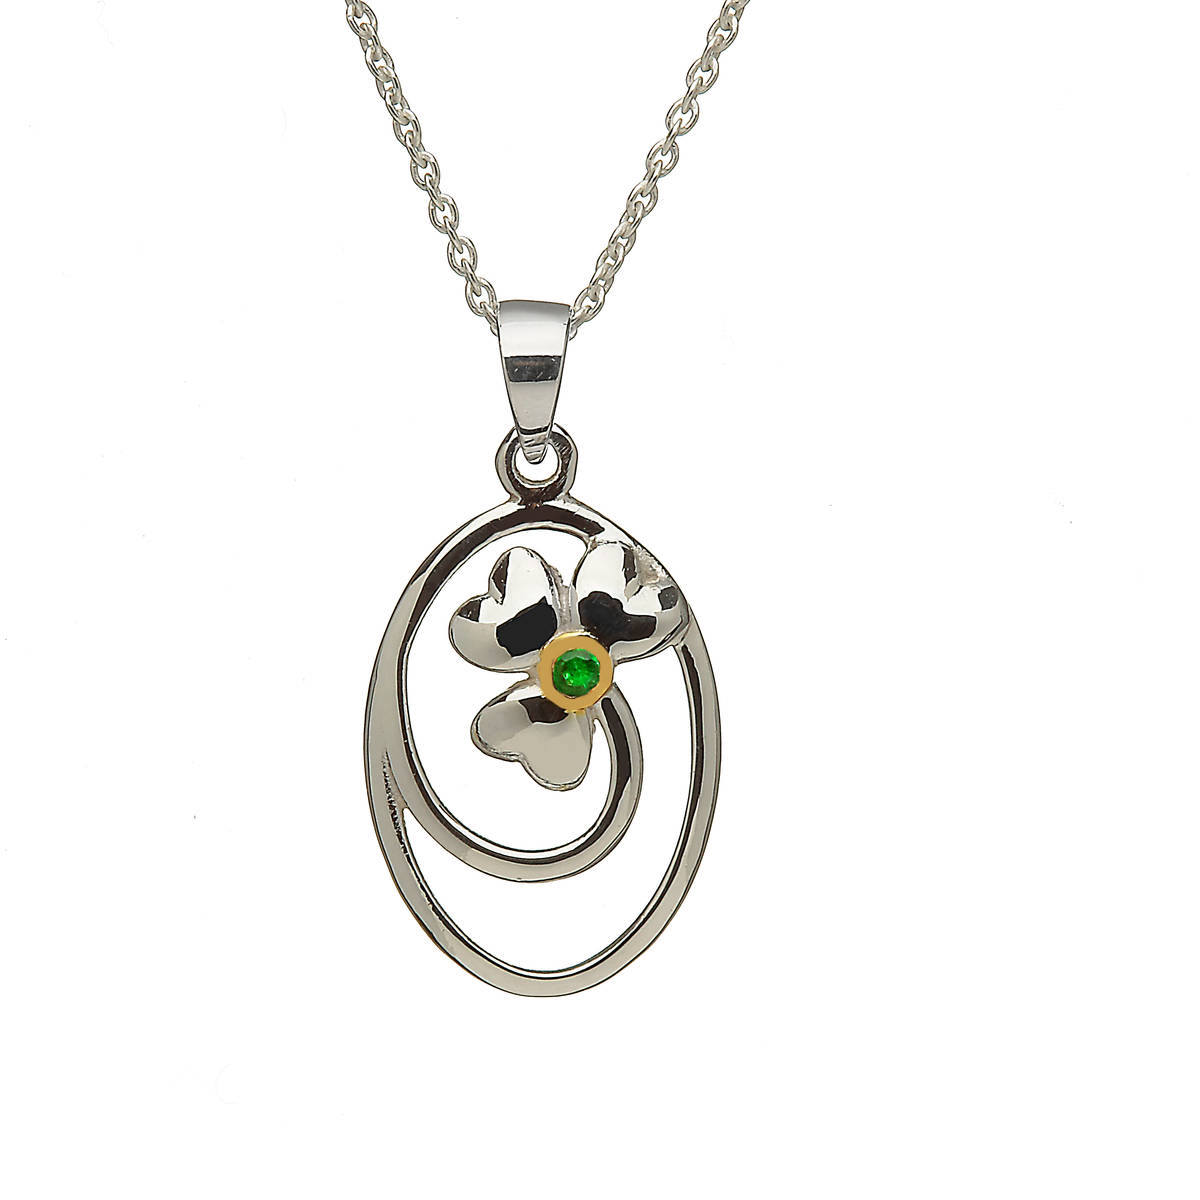 Silver Oval Pendant With Emerald Set Shamrock Centre